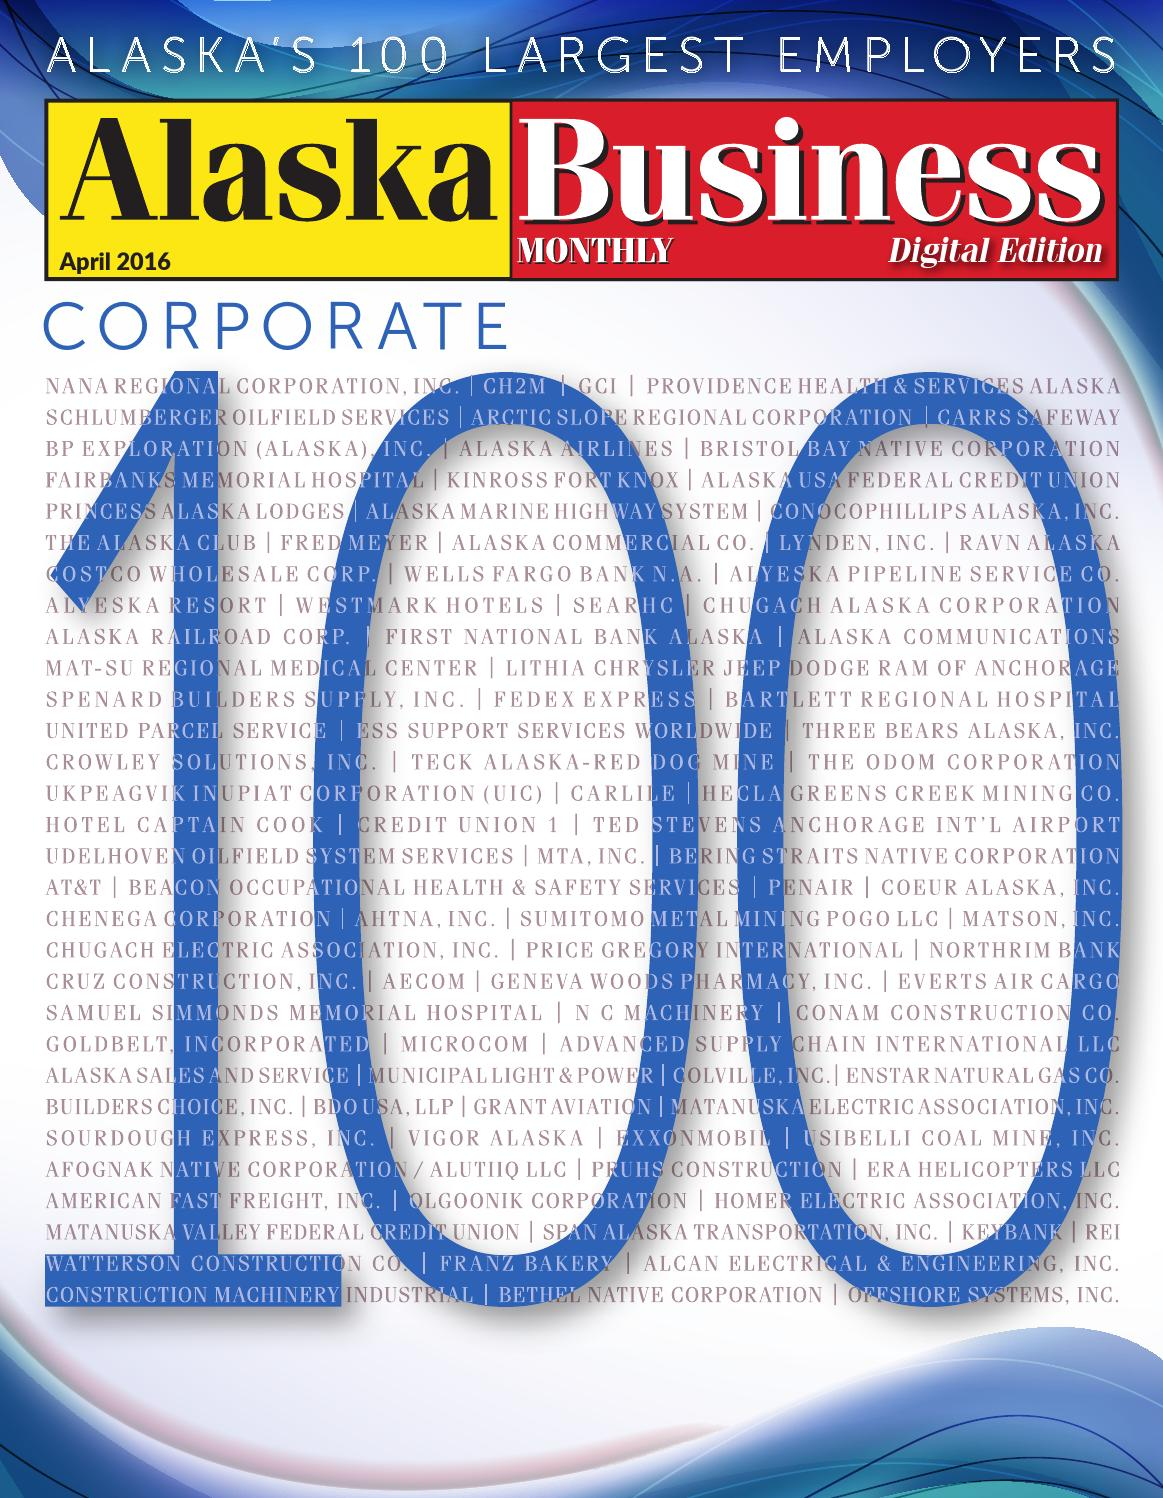 alaska business monthly april 2016 by alaska business - issuu